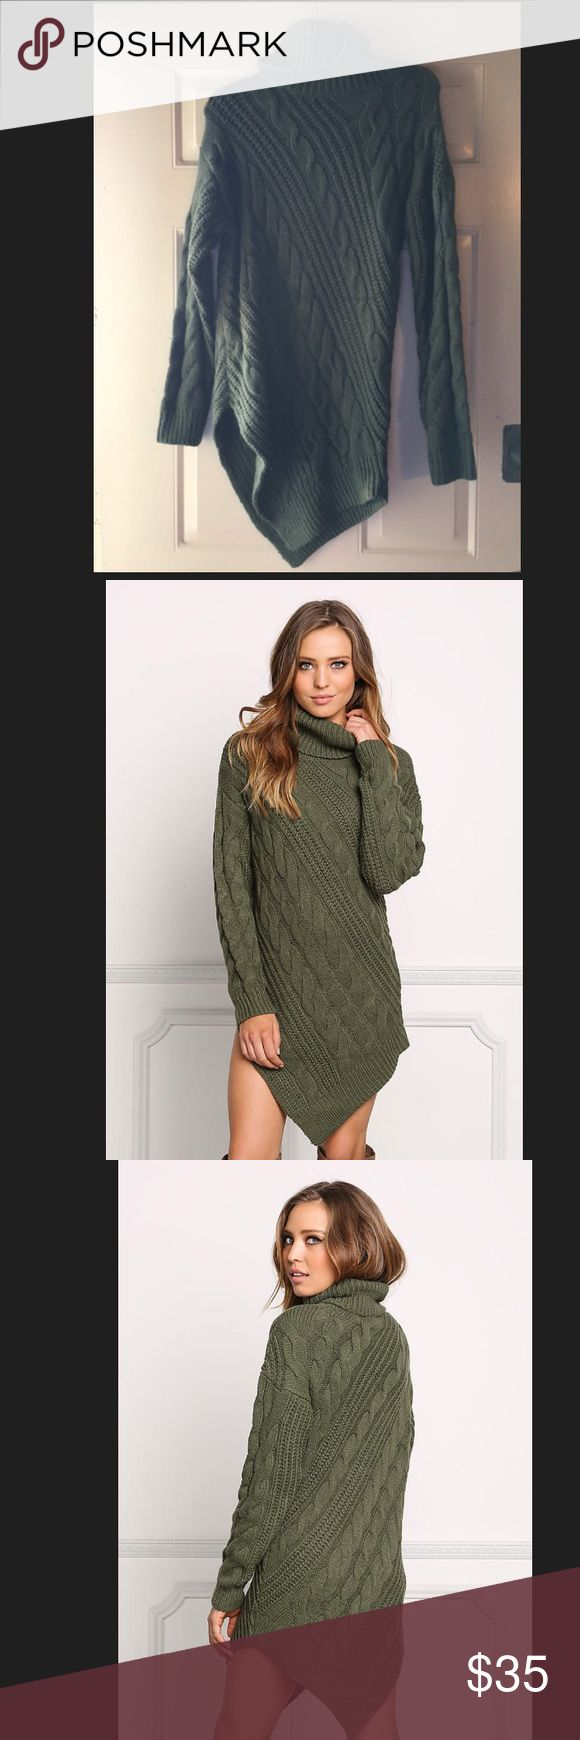 Olive Green Sweater Dress Olive Green Sweater Dress Love Culture Size: S / M Never worn Love Culture Dresses Mini